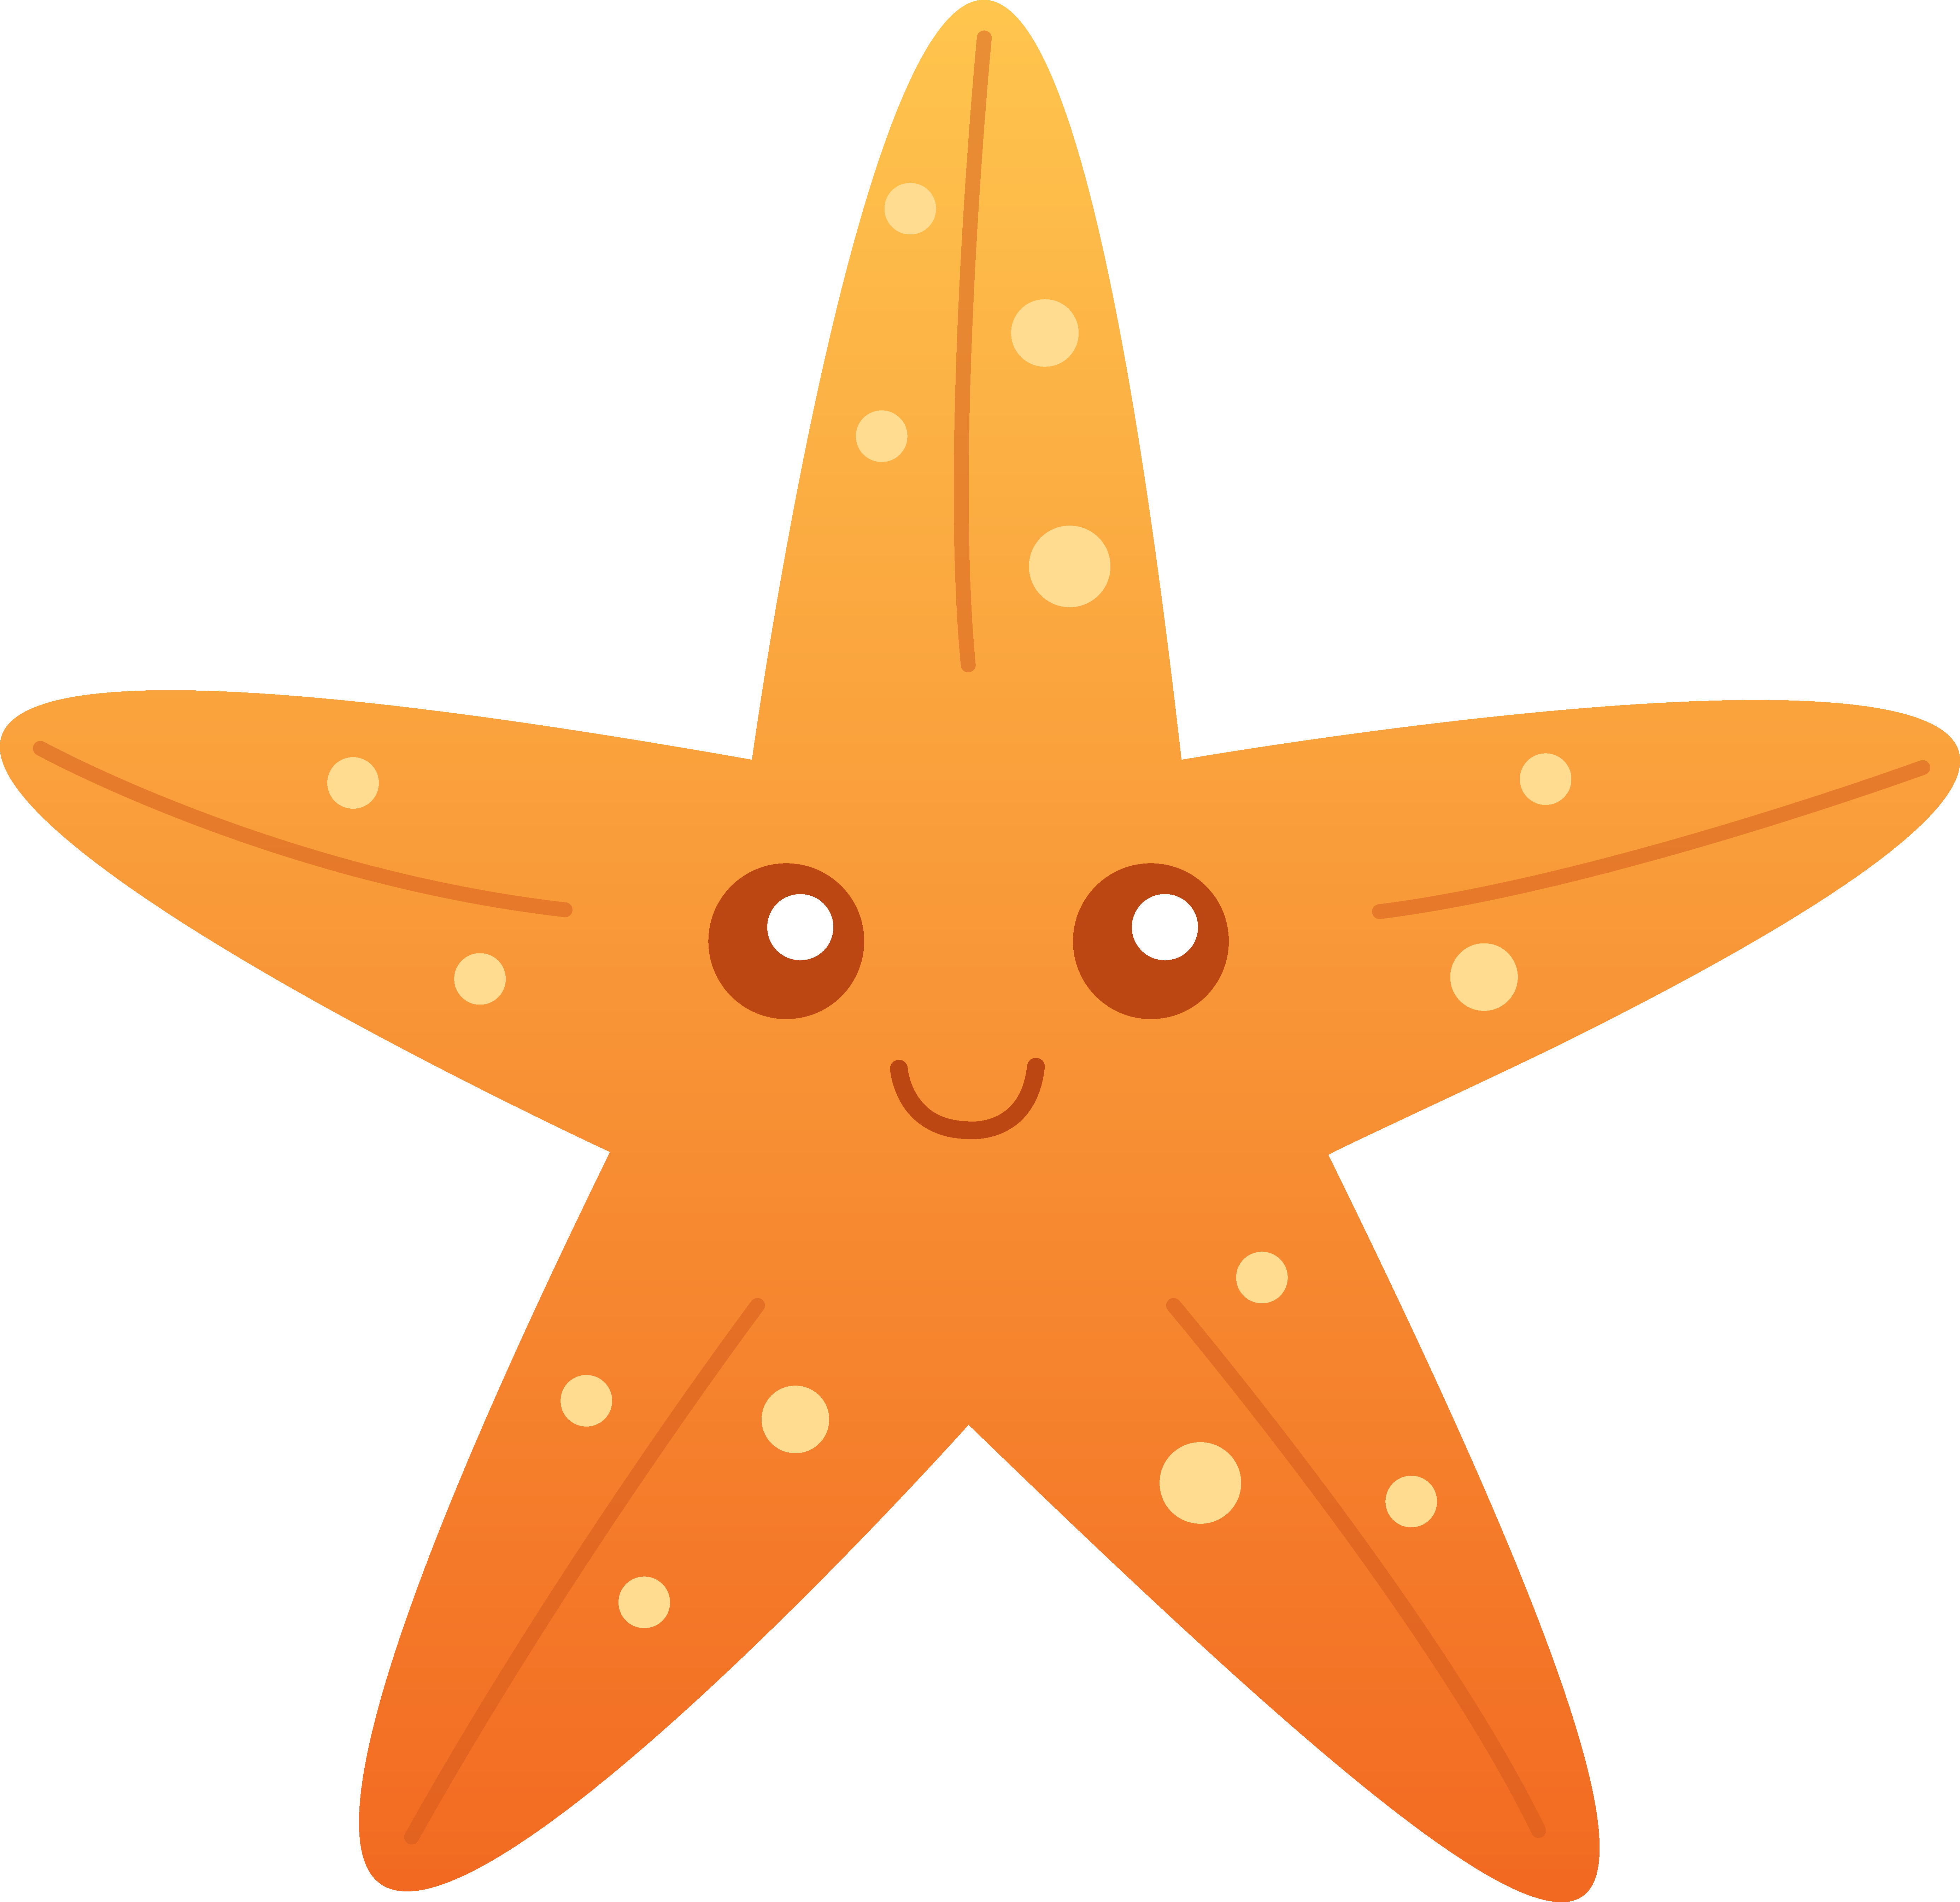 Starfish clipart simple cartoon. Clip art orange pre